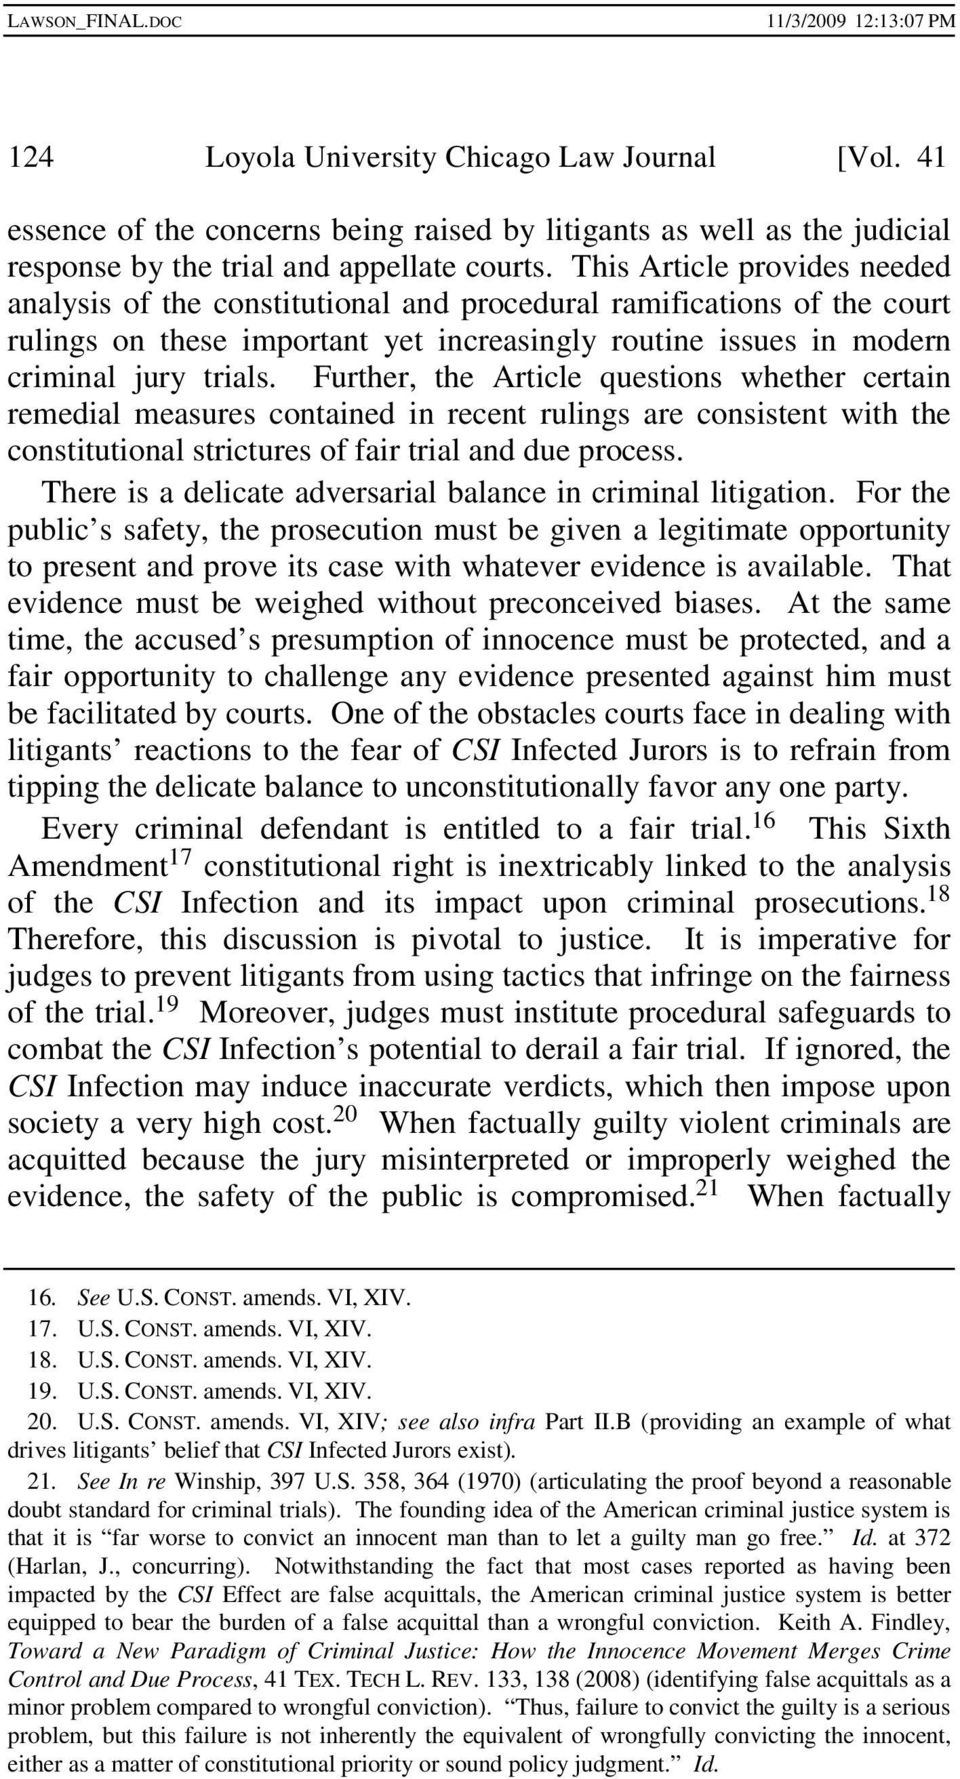 Further, the Article questions whether certain remedial measures contained in recent rulings are consistent with the constitutional strictures of fair trial and due process.